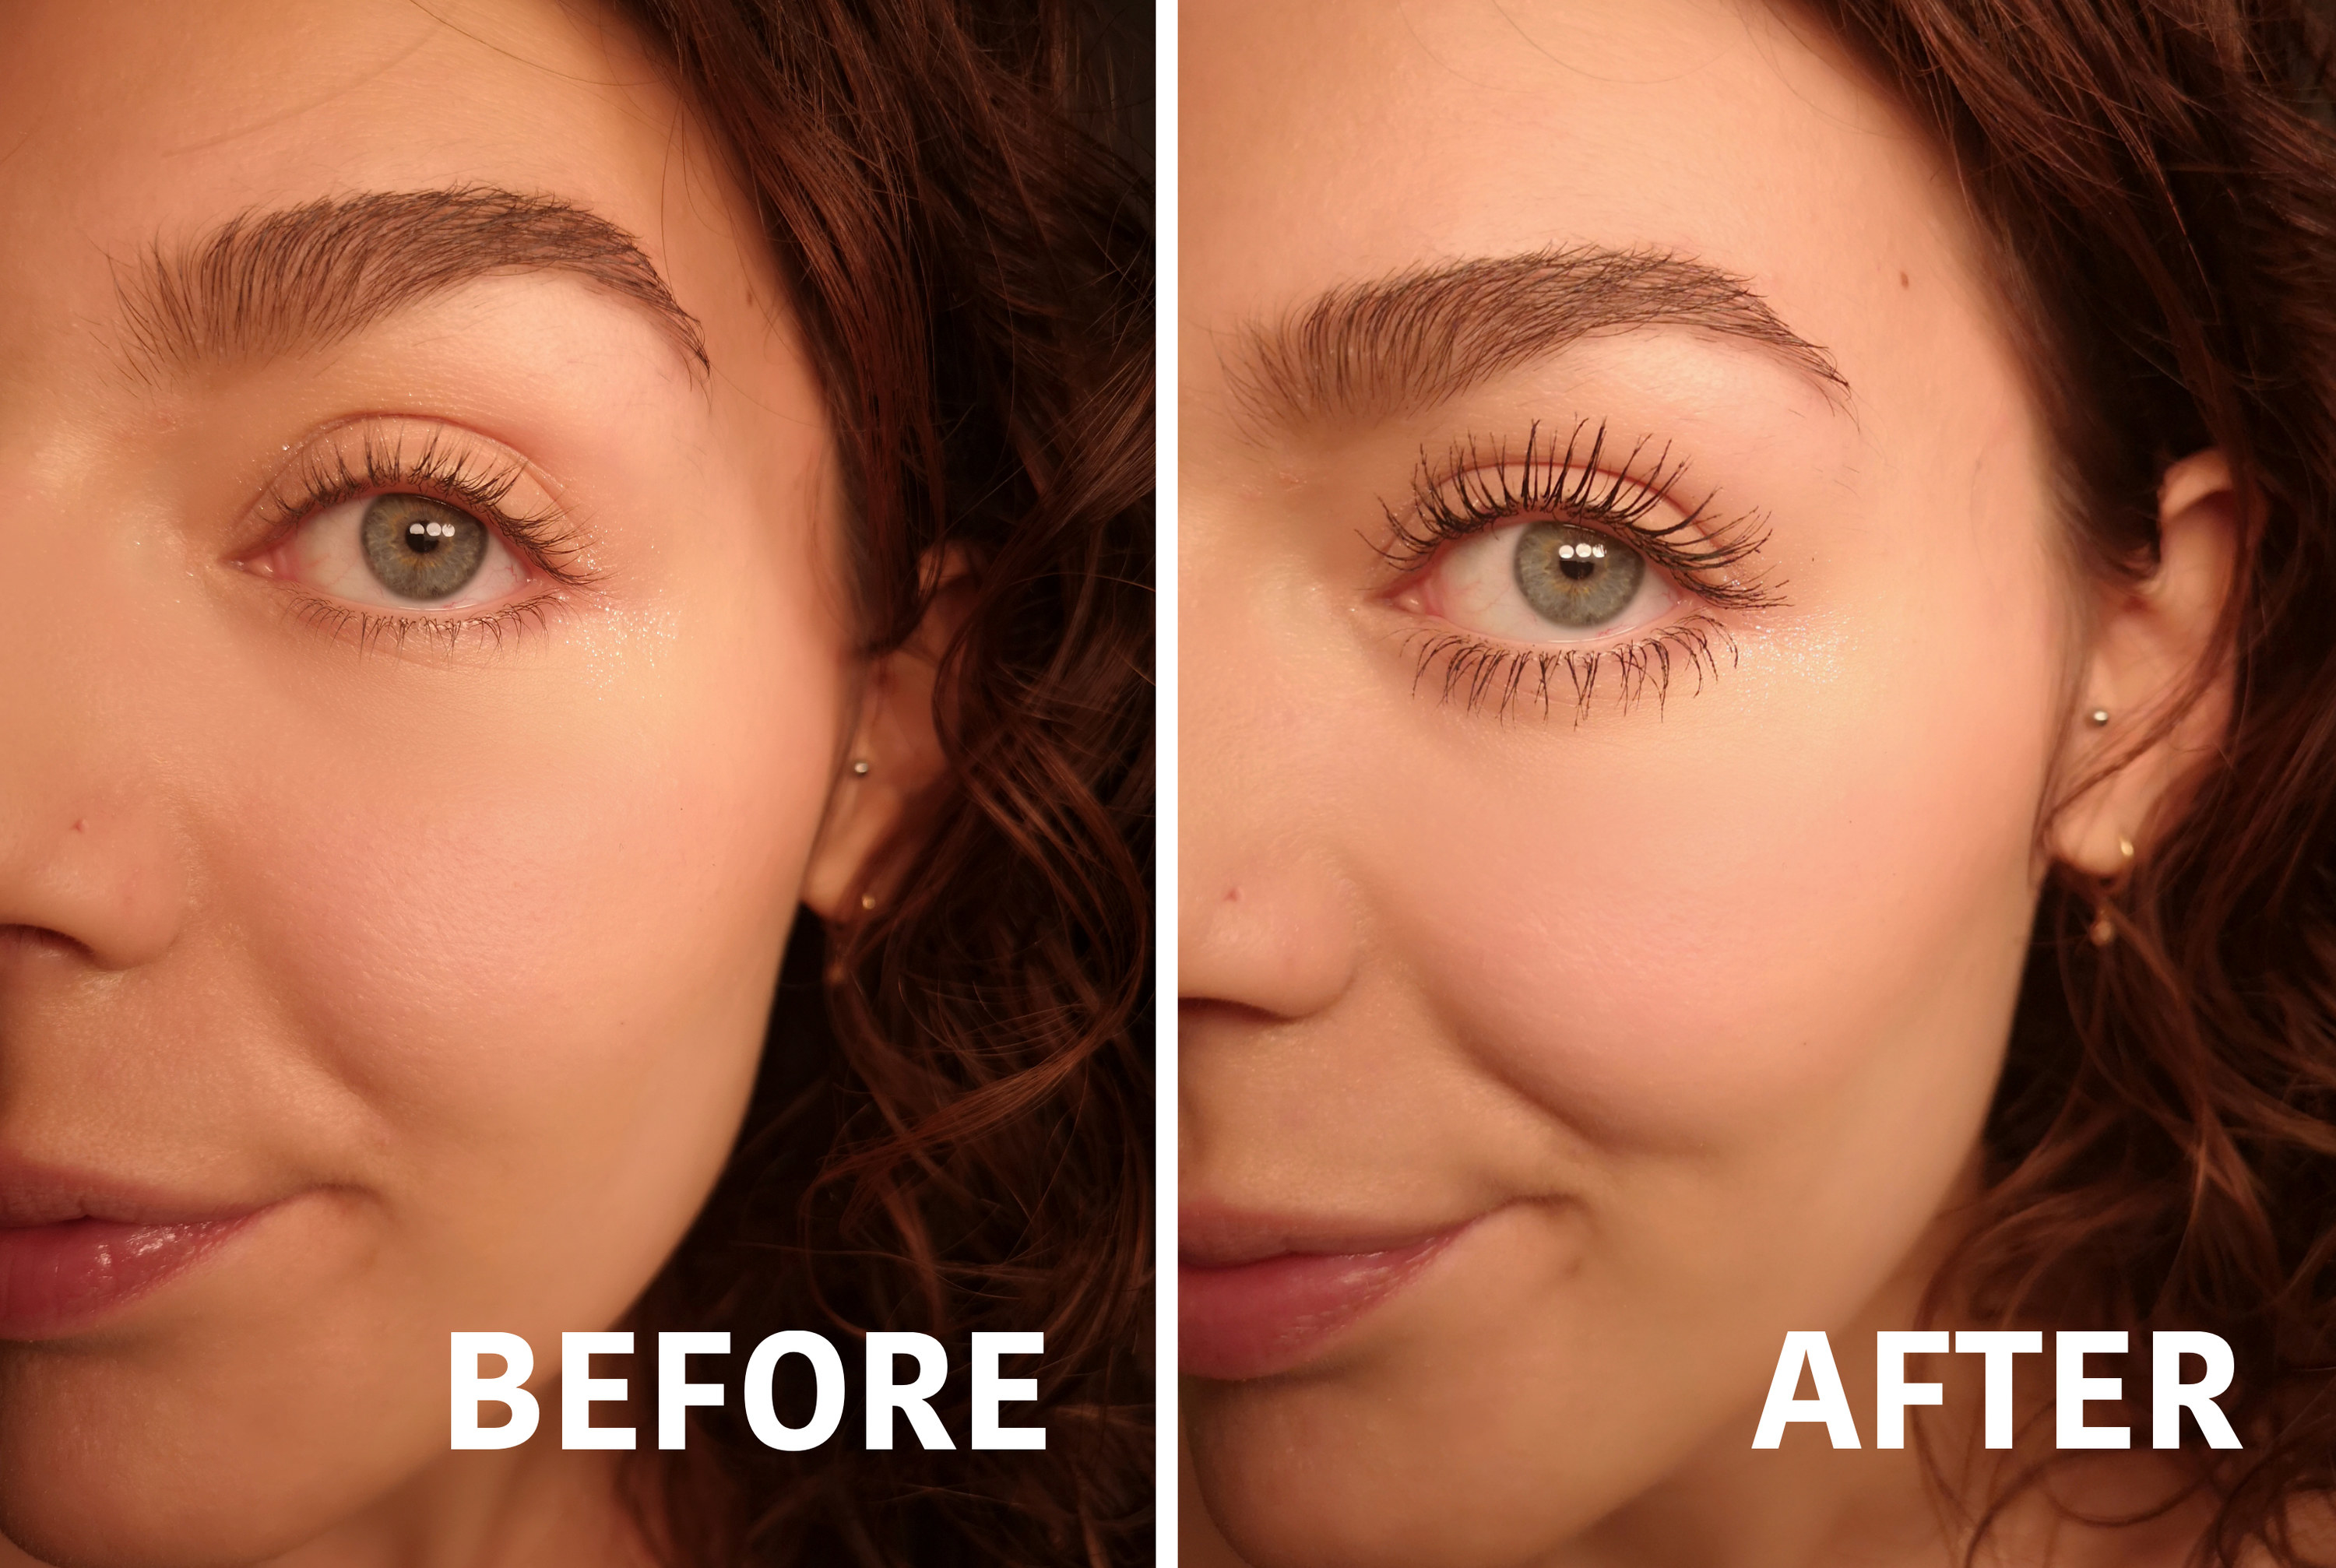 A before and after showing that the mascara made Brittany's lashes look a lot longer